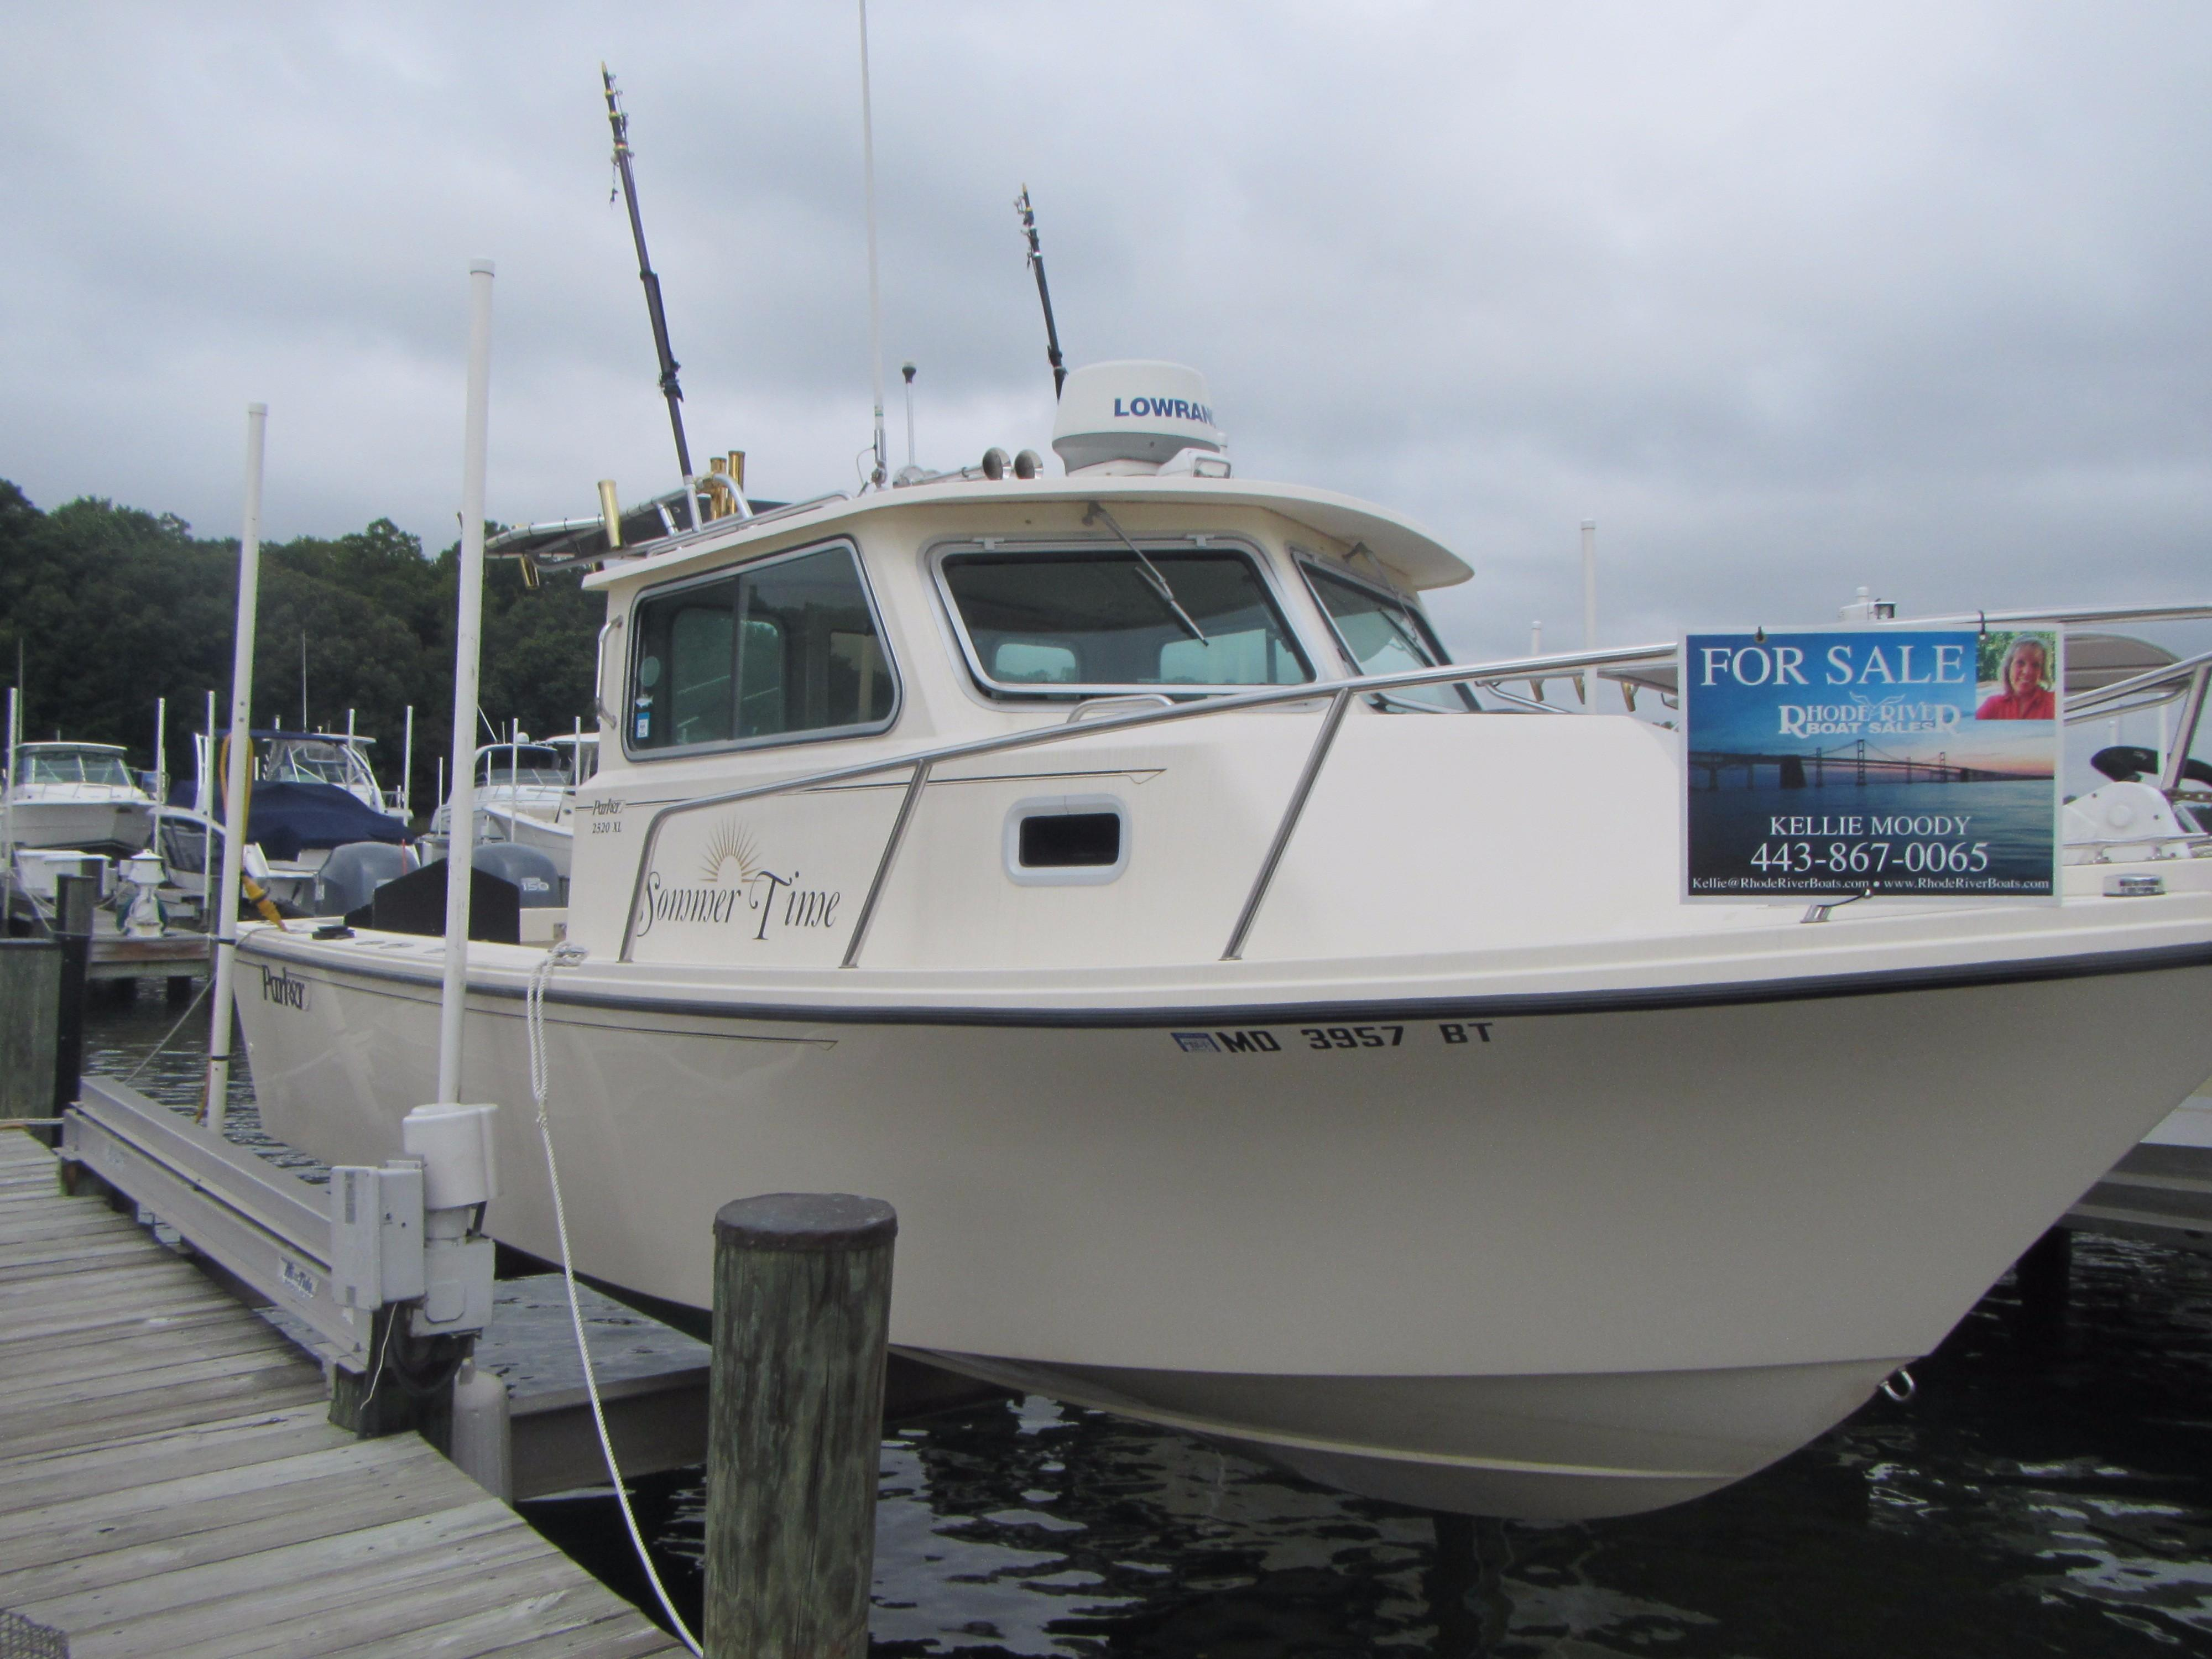 Parker new and used boats for sale in maryland for Used fishing boats for sale in md